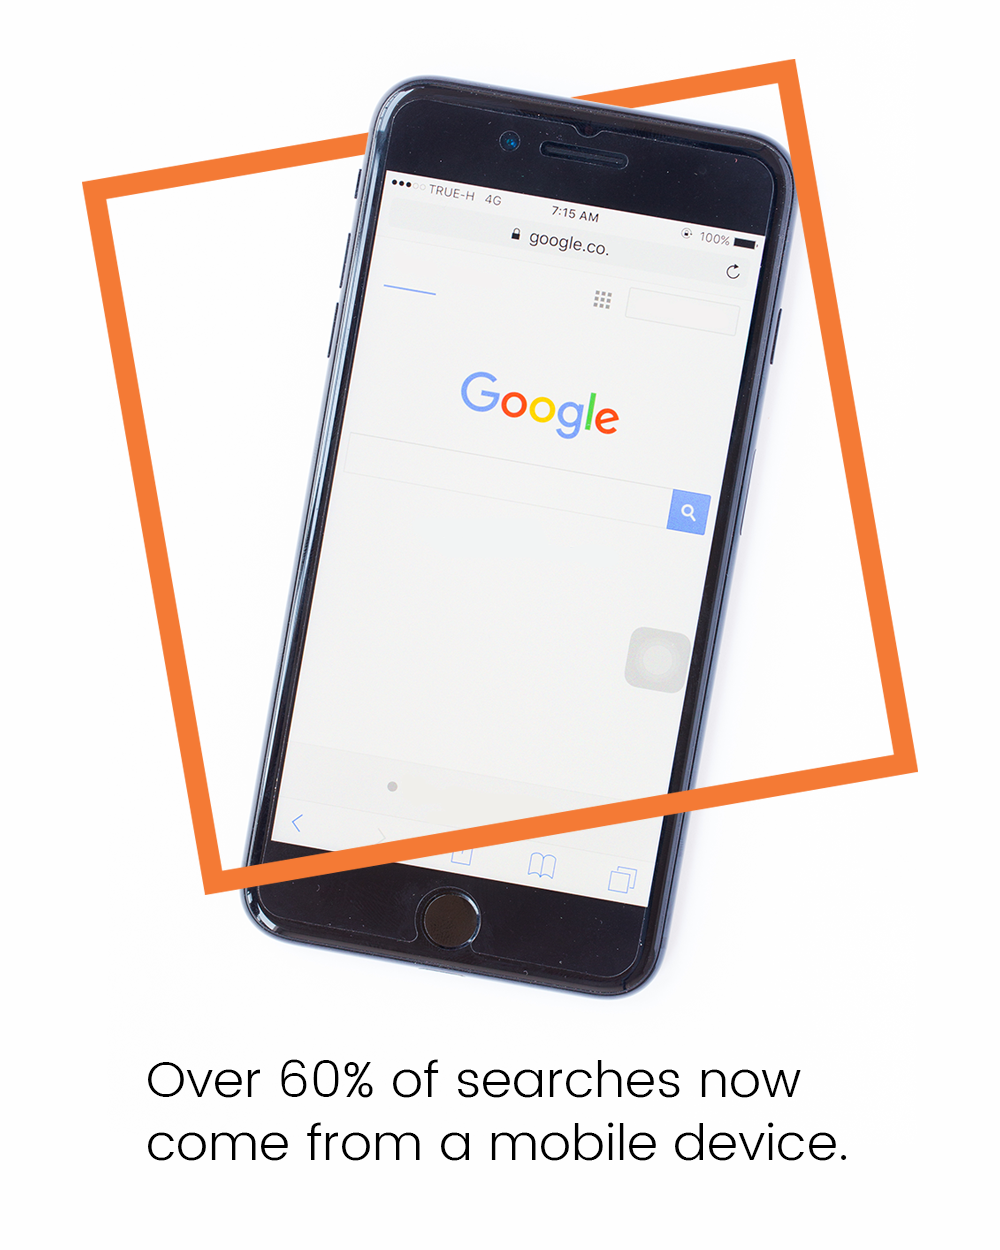 Over 60% of searches now come from a mobile device.